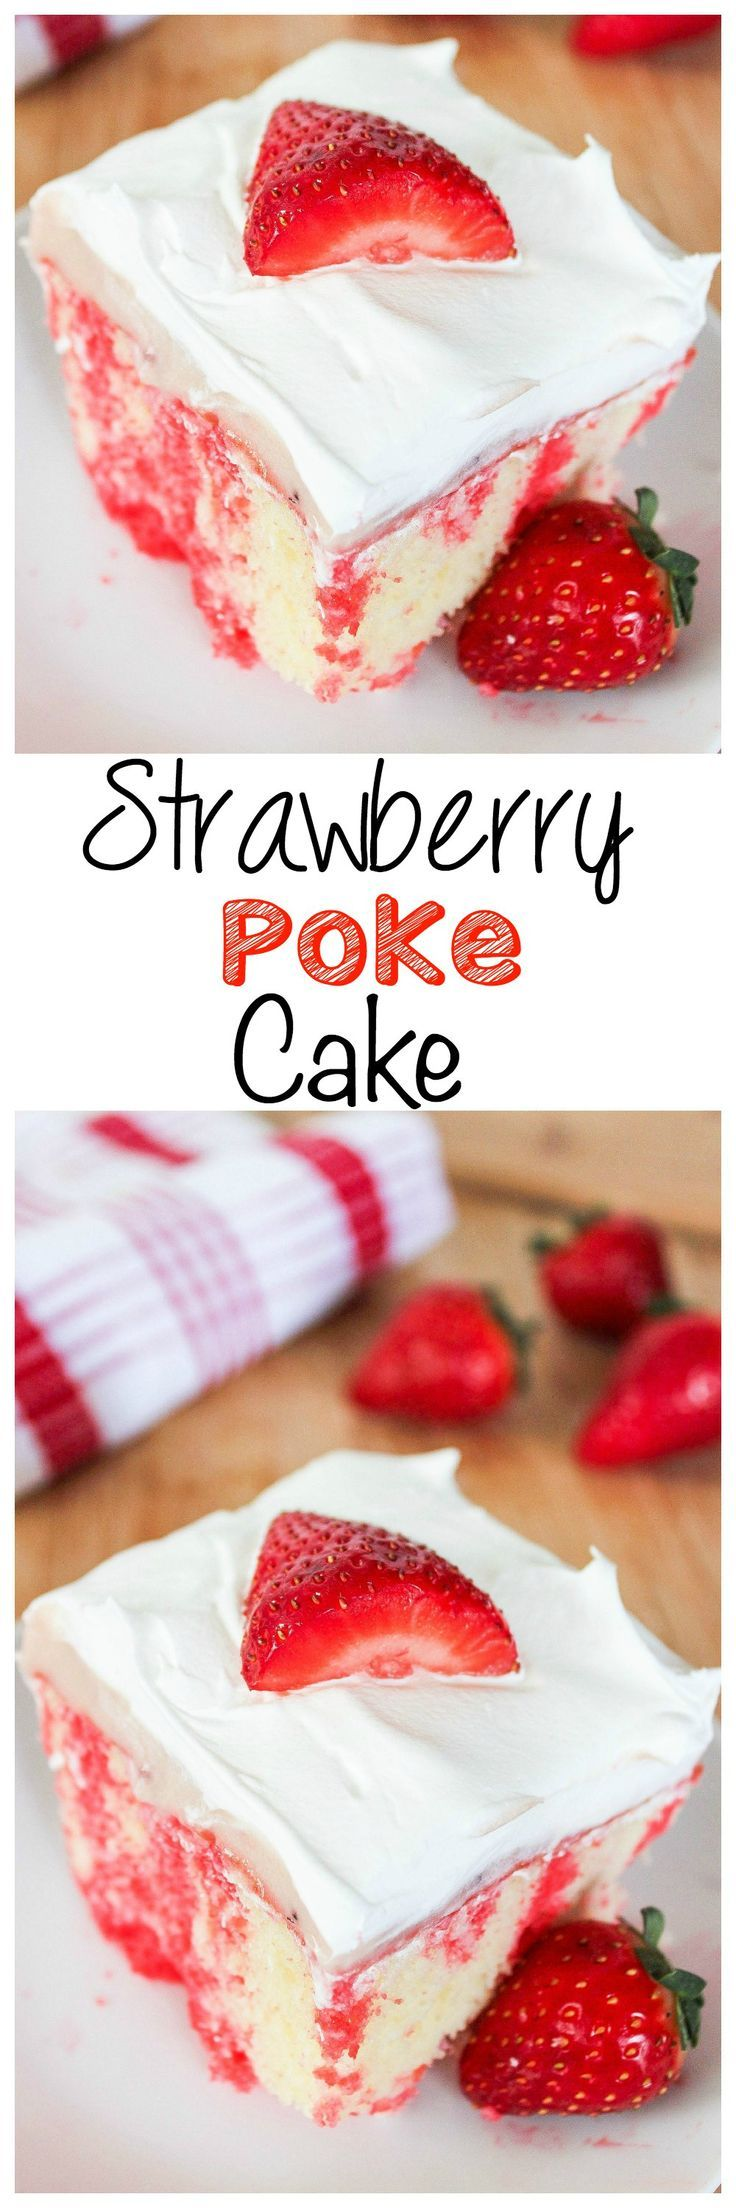 Strawberry Poke Cake: Moist white cake bursting with strawberries and topped with whipped cream. All the flavors of strawberry cheesecake in an easy to make sheet cake!: